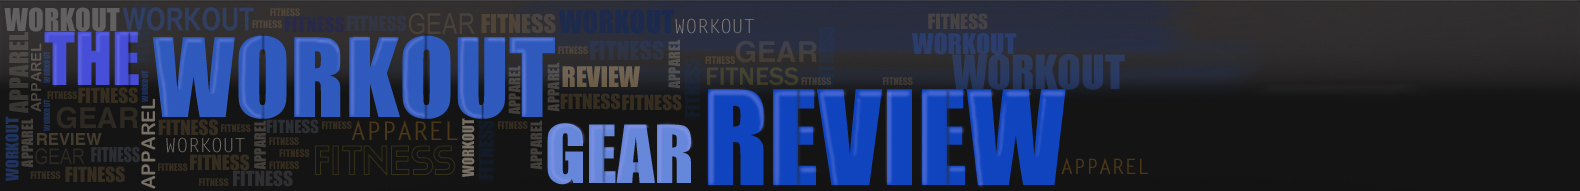 The Workout Gear Review header image